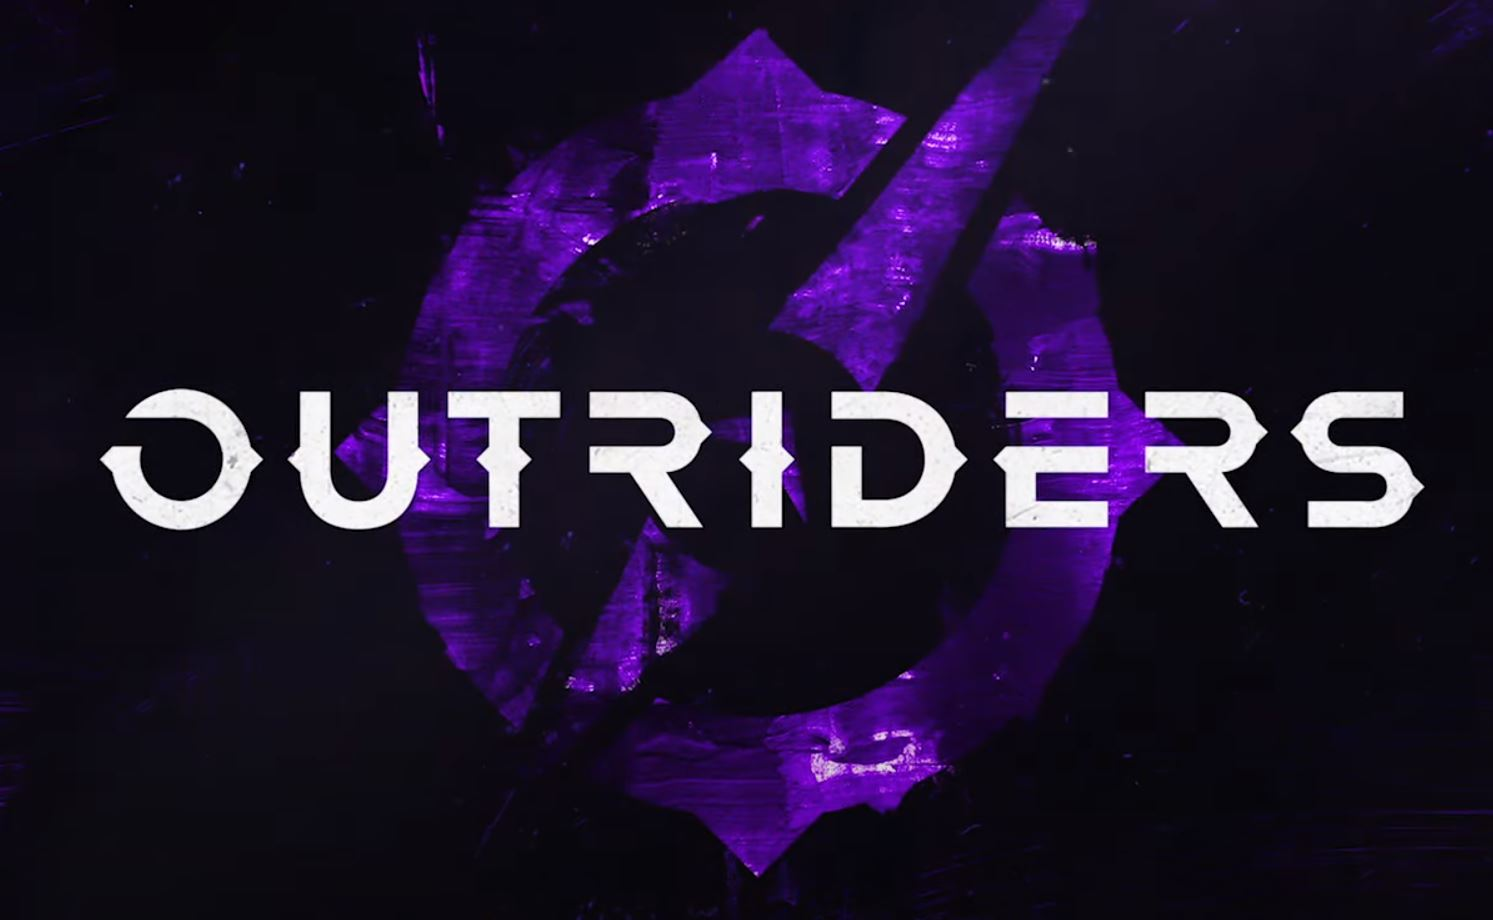 outriders.JPG